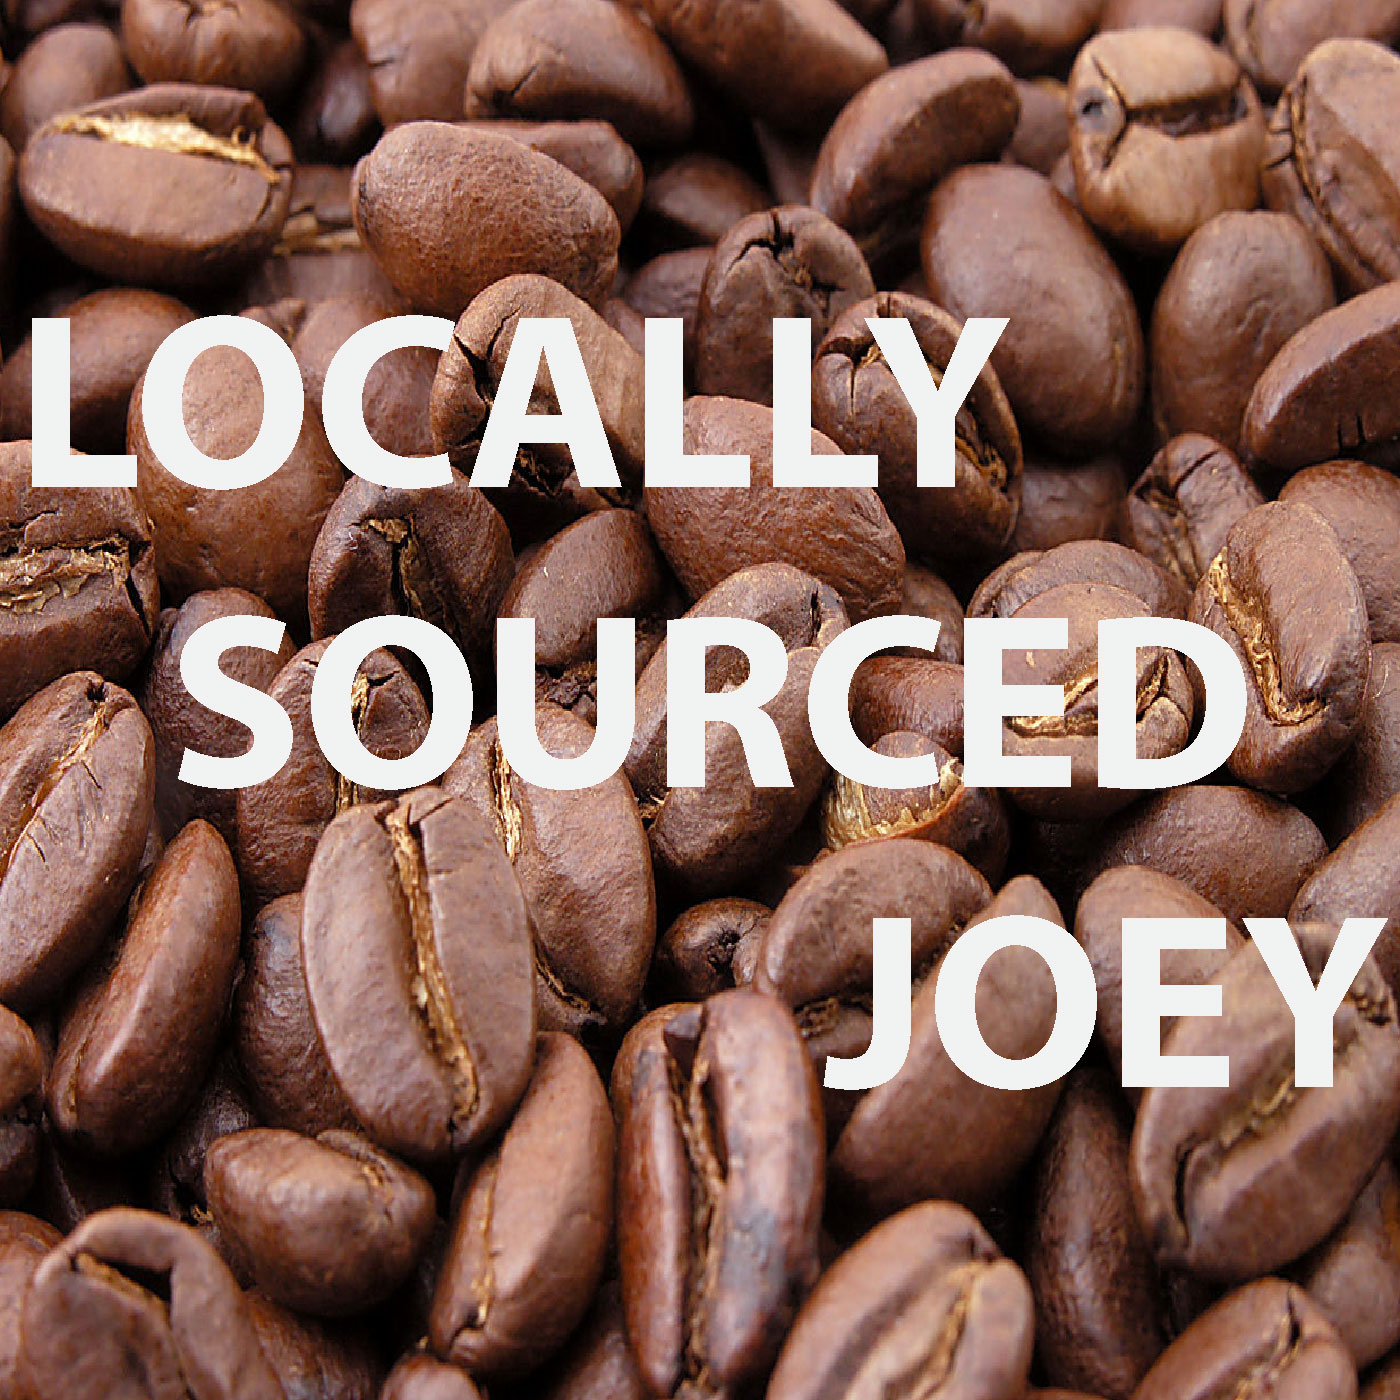 Locally Sourced Joey